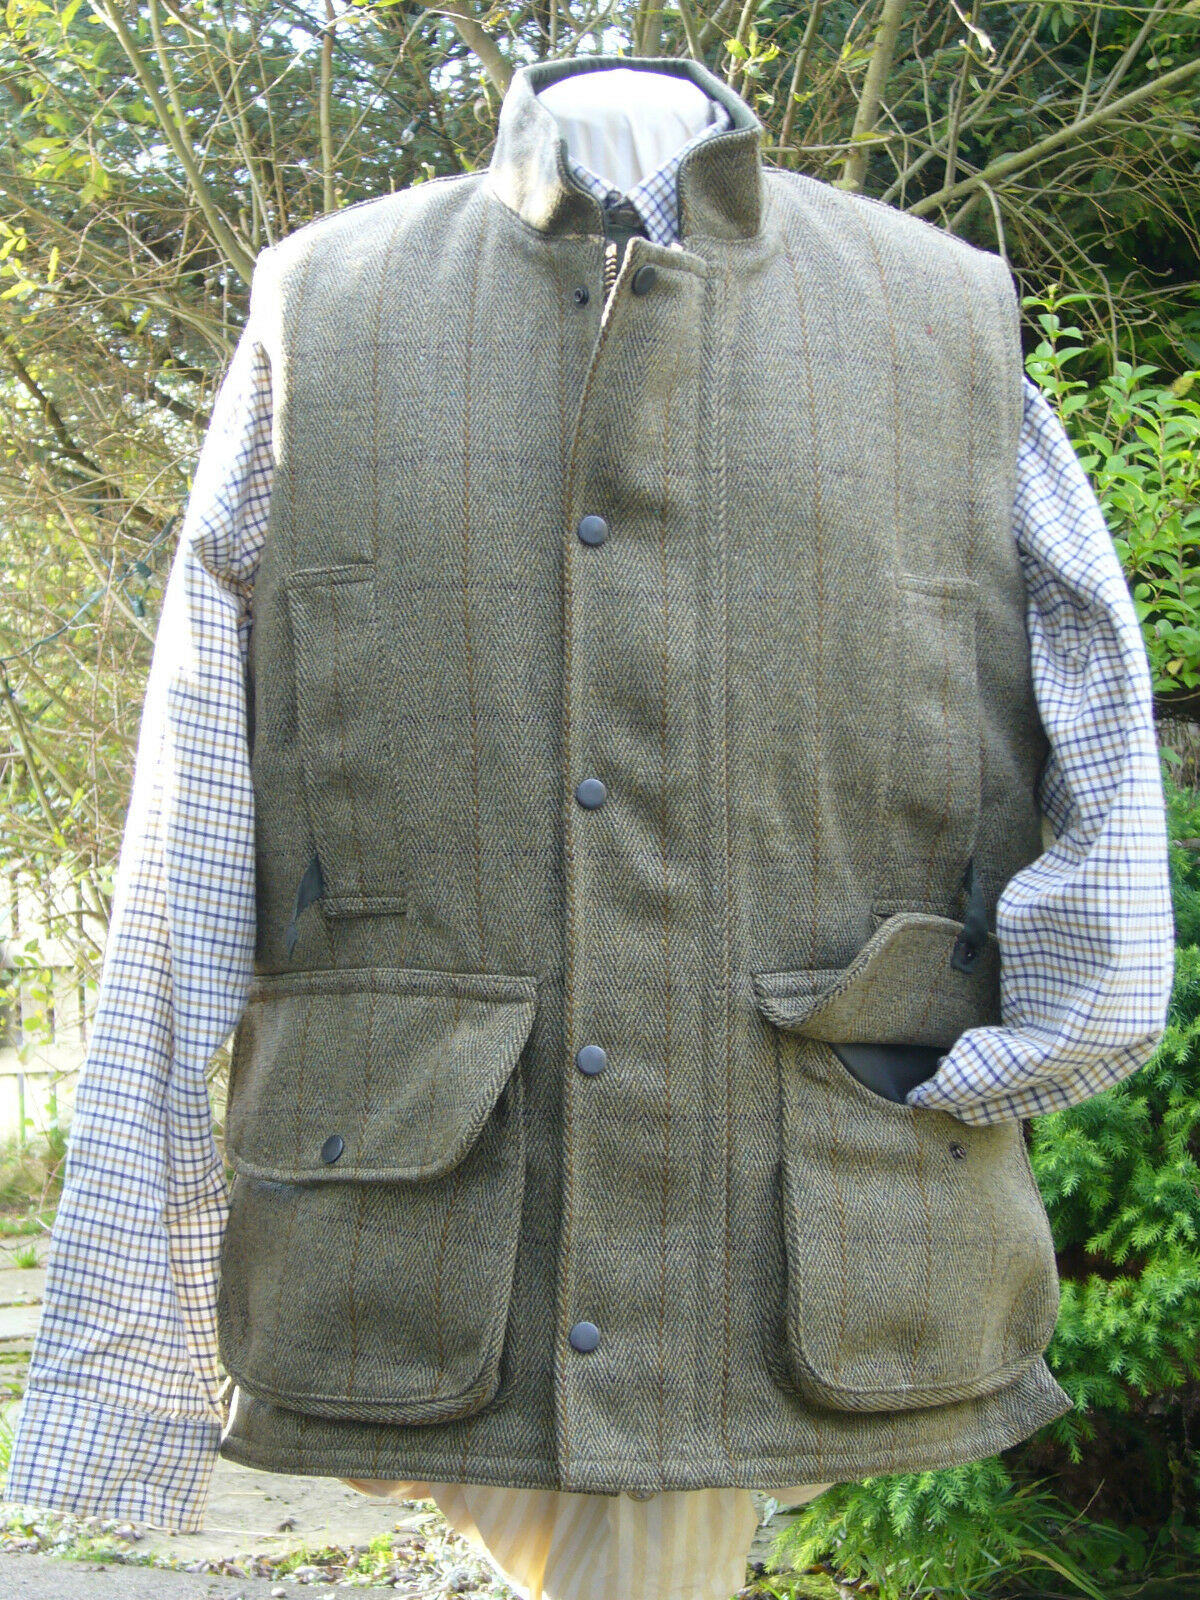 KEEPER TWEED SHOOTING VEST BNWT 4 HUNTING NEW